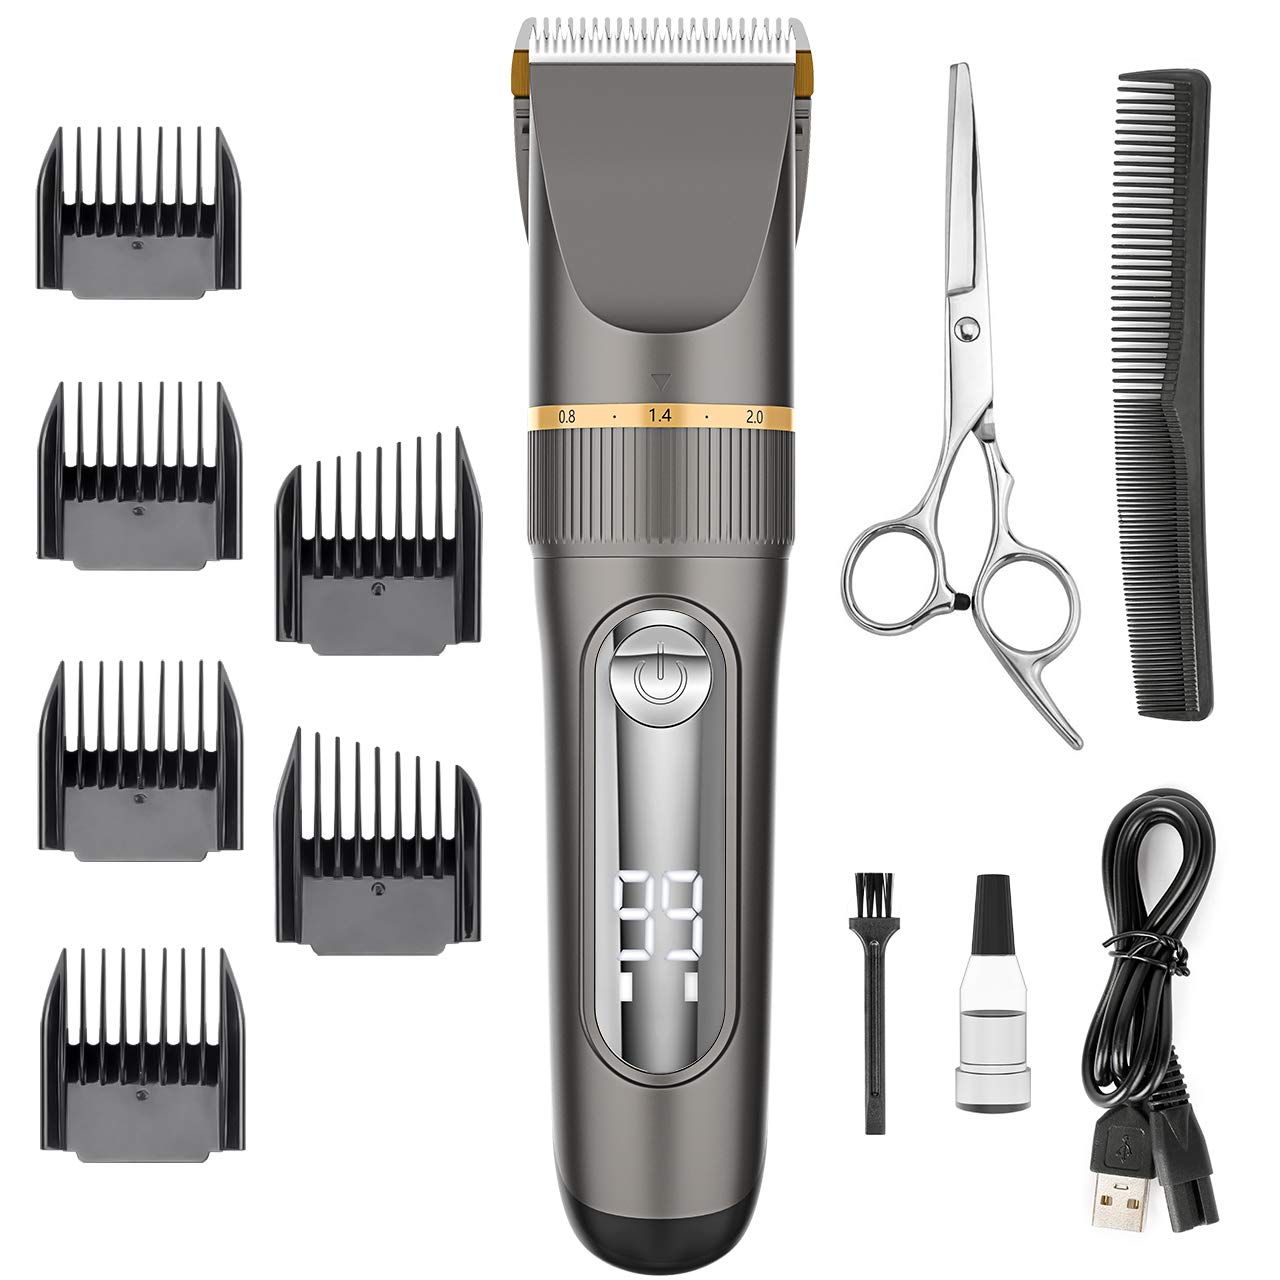 Hair Clippers – Nicewell Waterproof Hair Clippers for Men Kids Cordless Hair Trimmer Kit with Hair Scissors Guard Combs